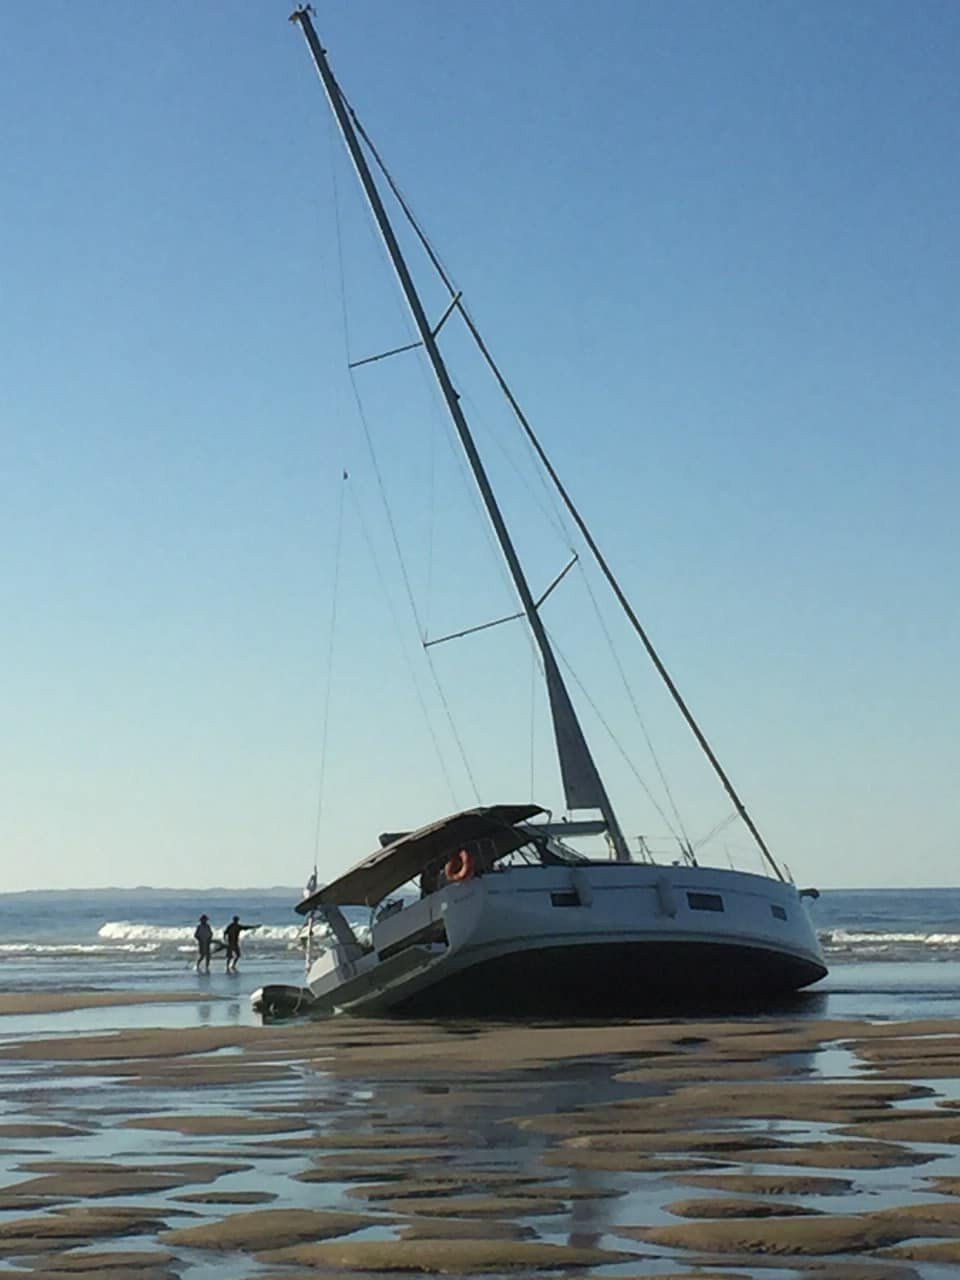 The luxury yacht that has washed up on a beach on Fraser Island.